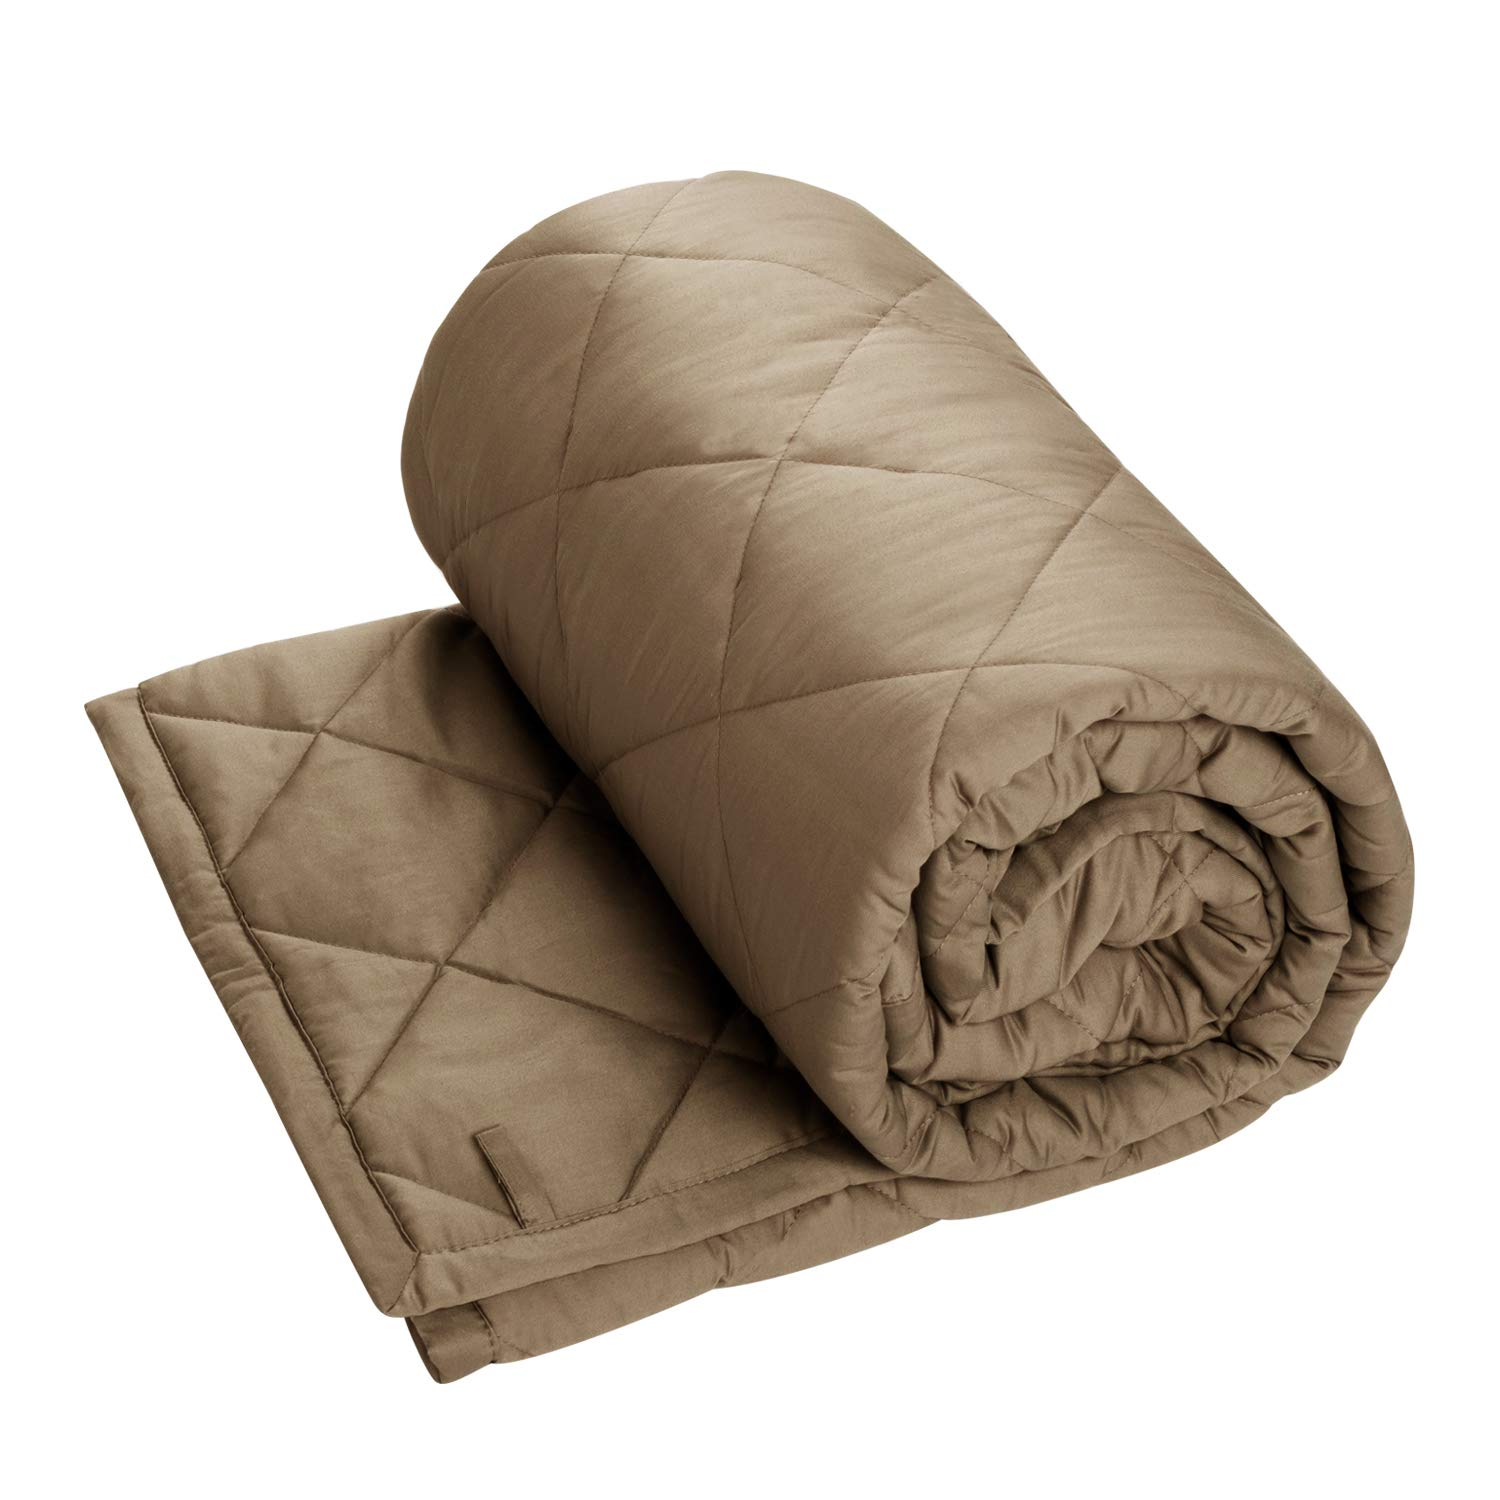 CALA Weighted Blanket 5lbs for Kids,36''x48'' Heavy Blanket for Children,Natural Cotton Material with Glass Beads,Blankets 2.0, KHAKI